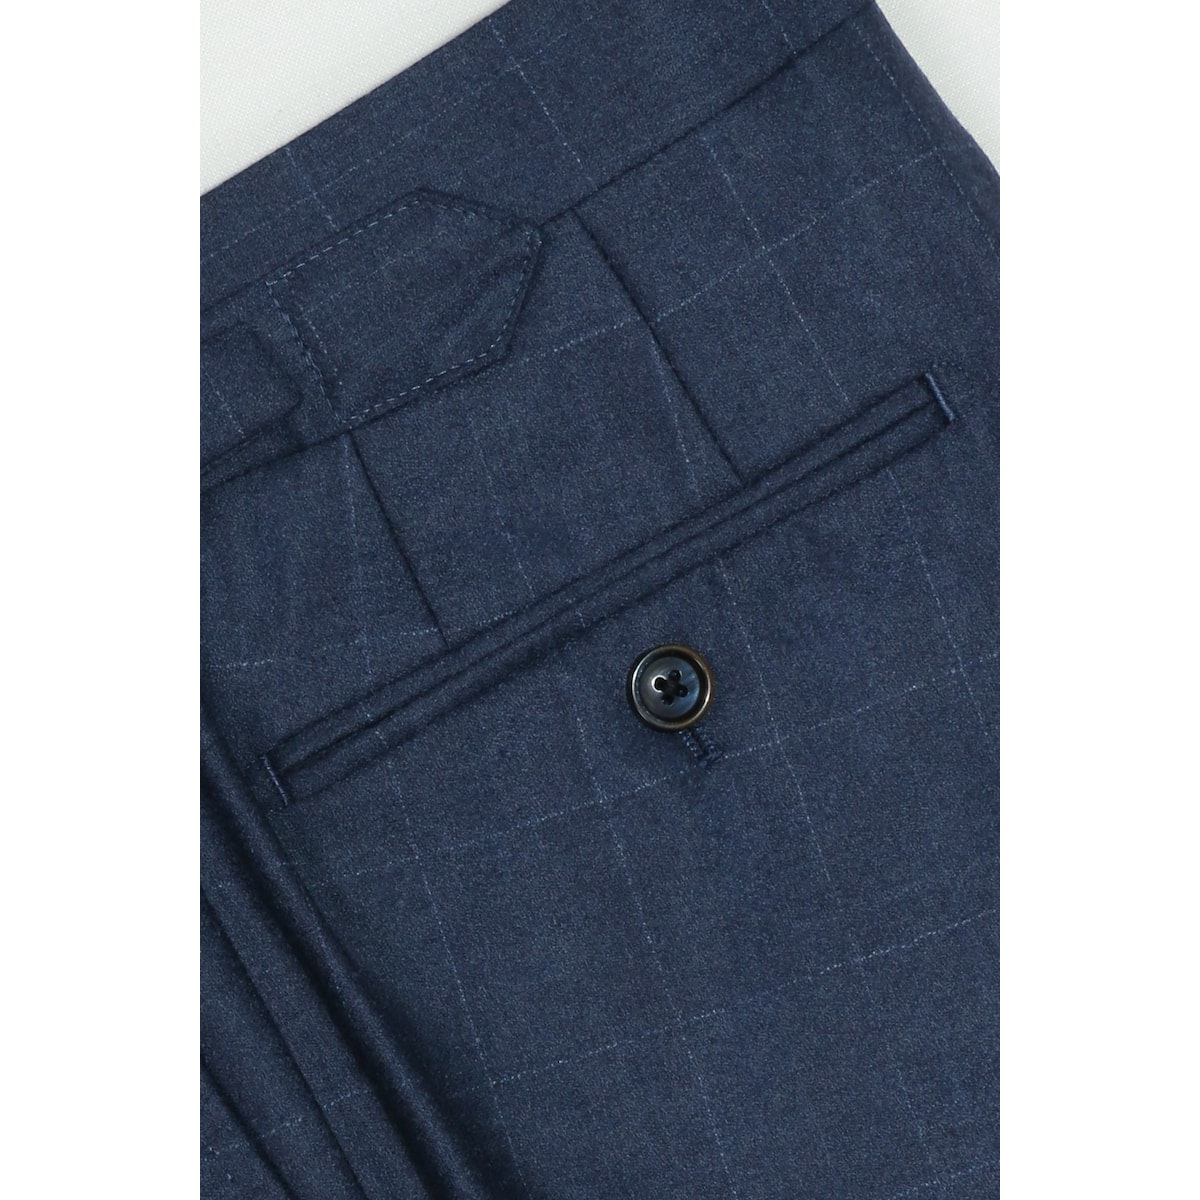 InStitchu Collection The Grant Pants